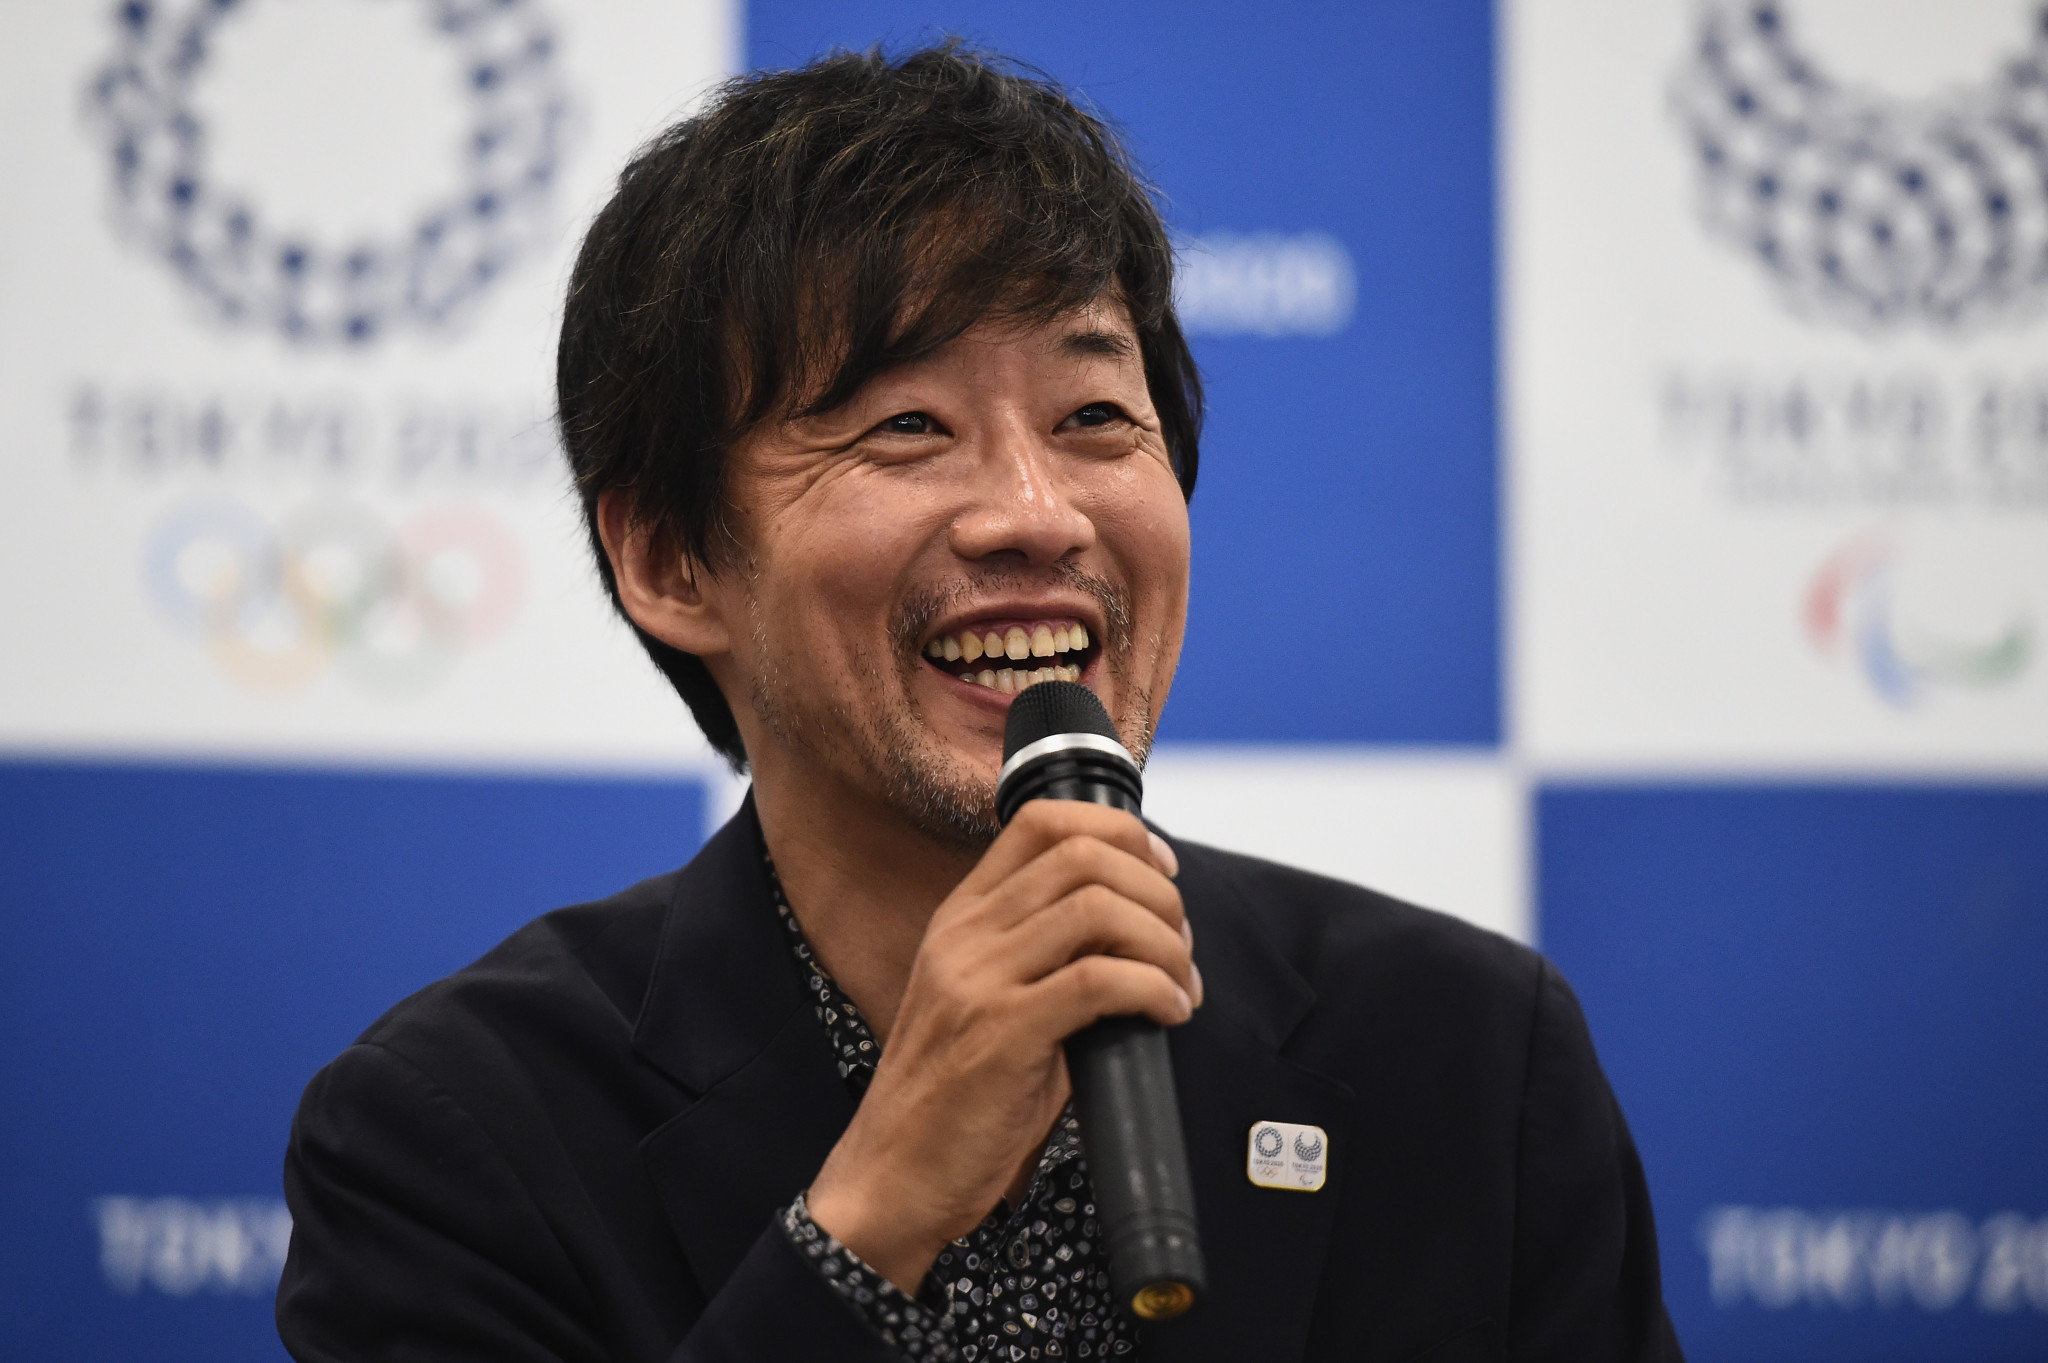 Takashi Yamazaki has been named as the executive creative director for the Opening and Closing Ceremonies for the Olympics ©Getty Images